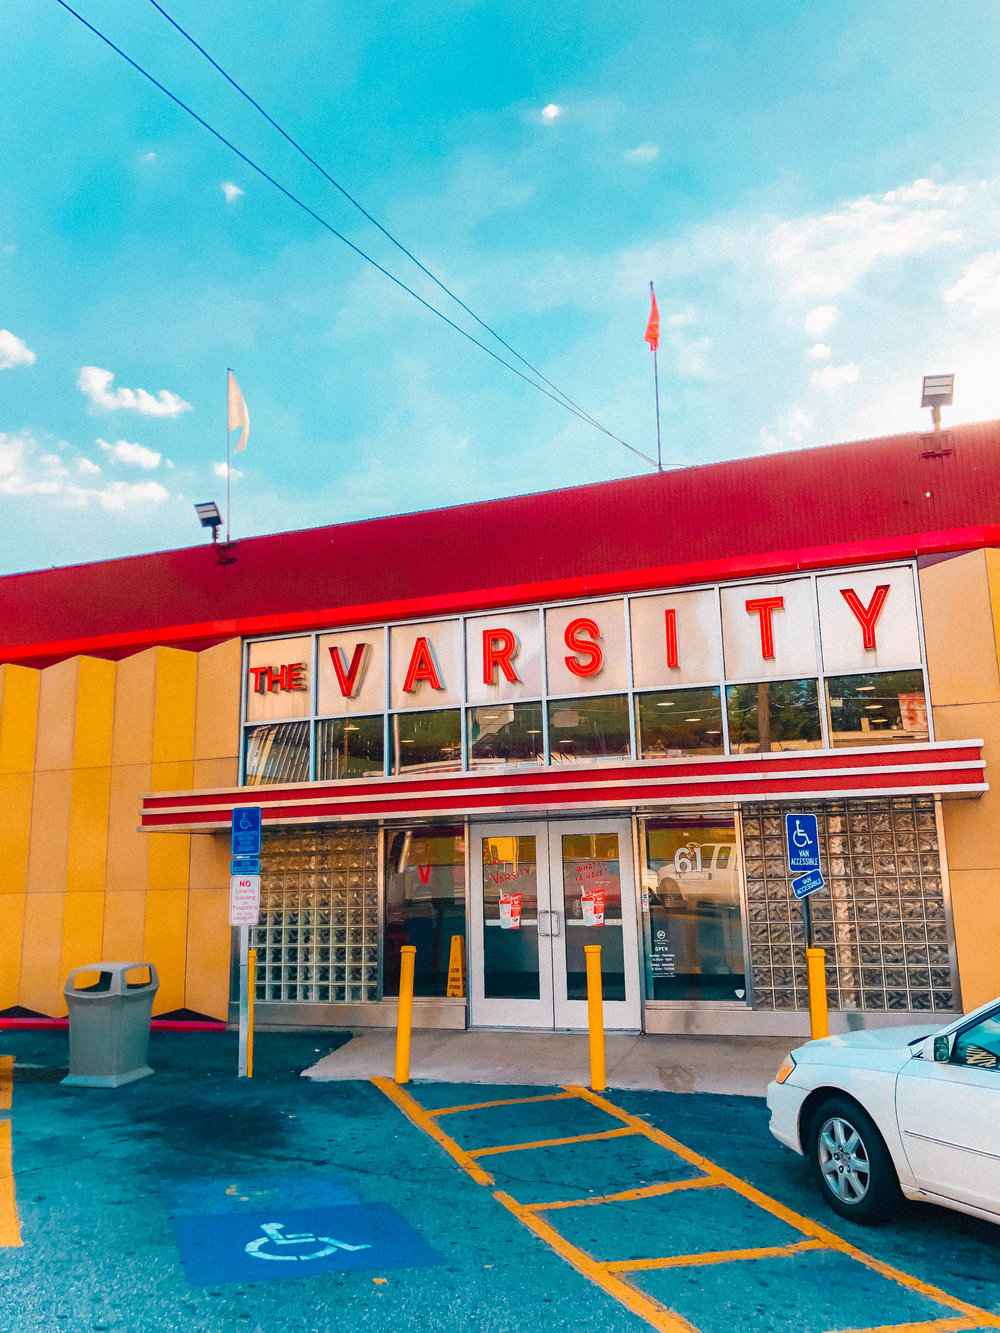 The Varsity | Things to Do in Atlanta | Jordan Hefler